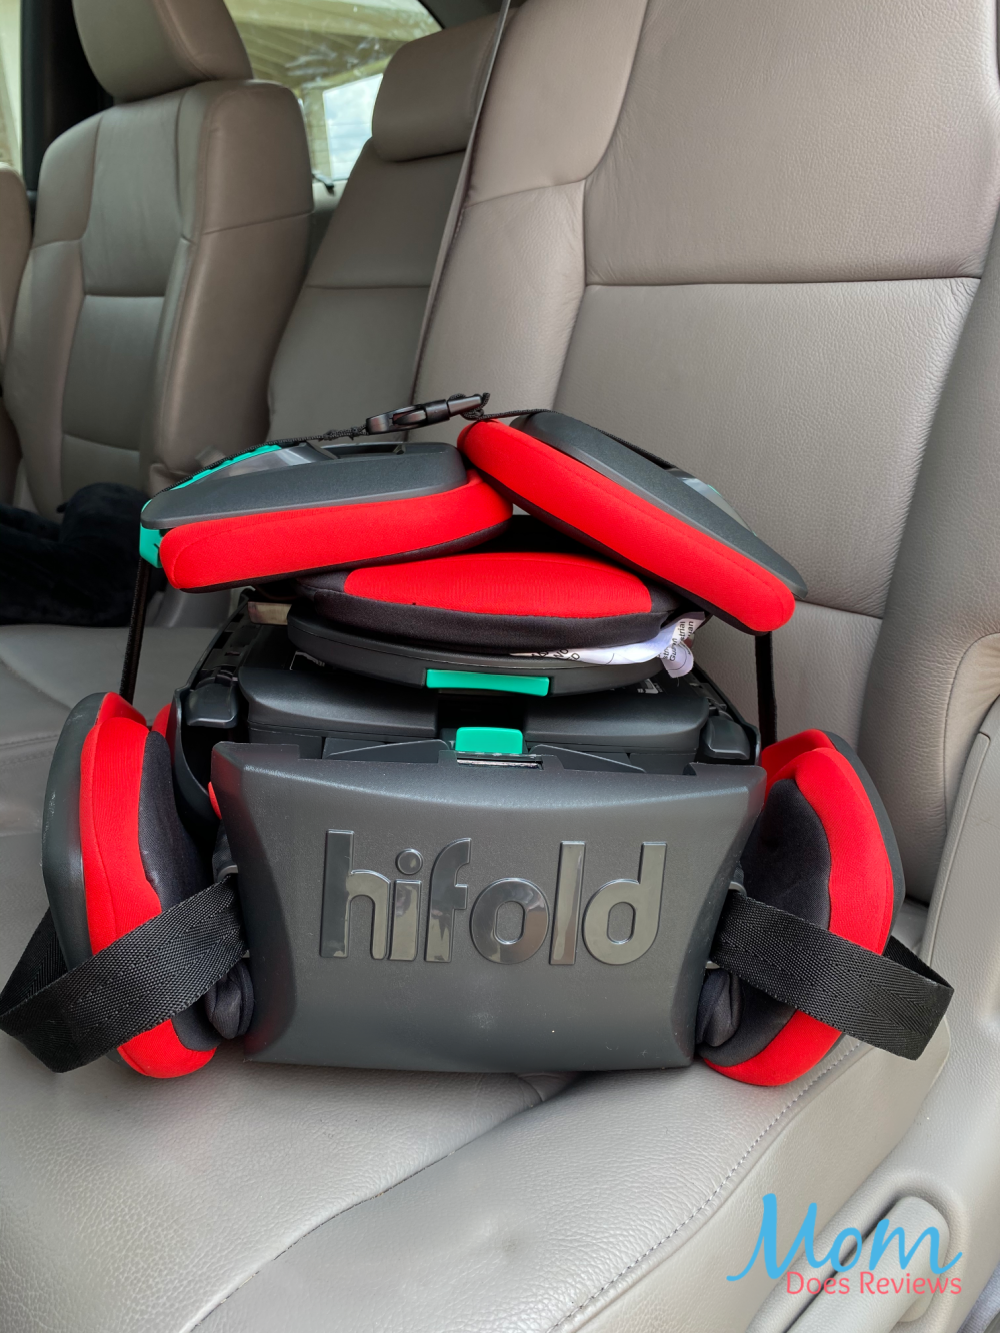 hifold travel booster seat